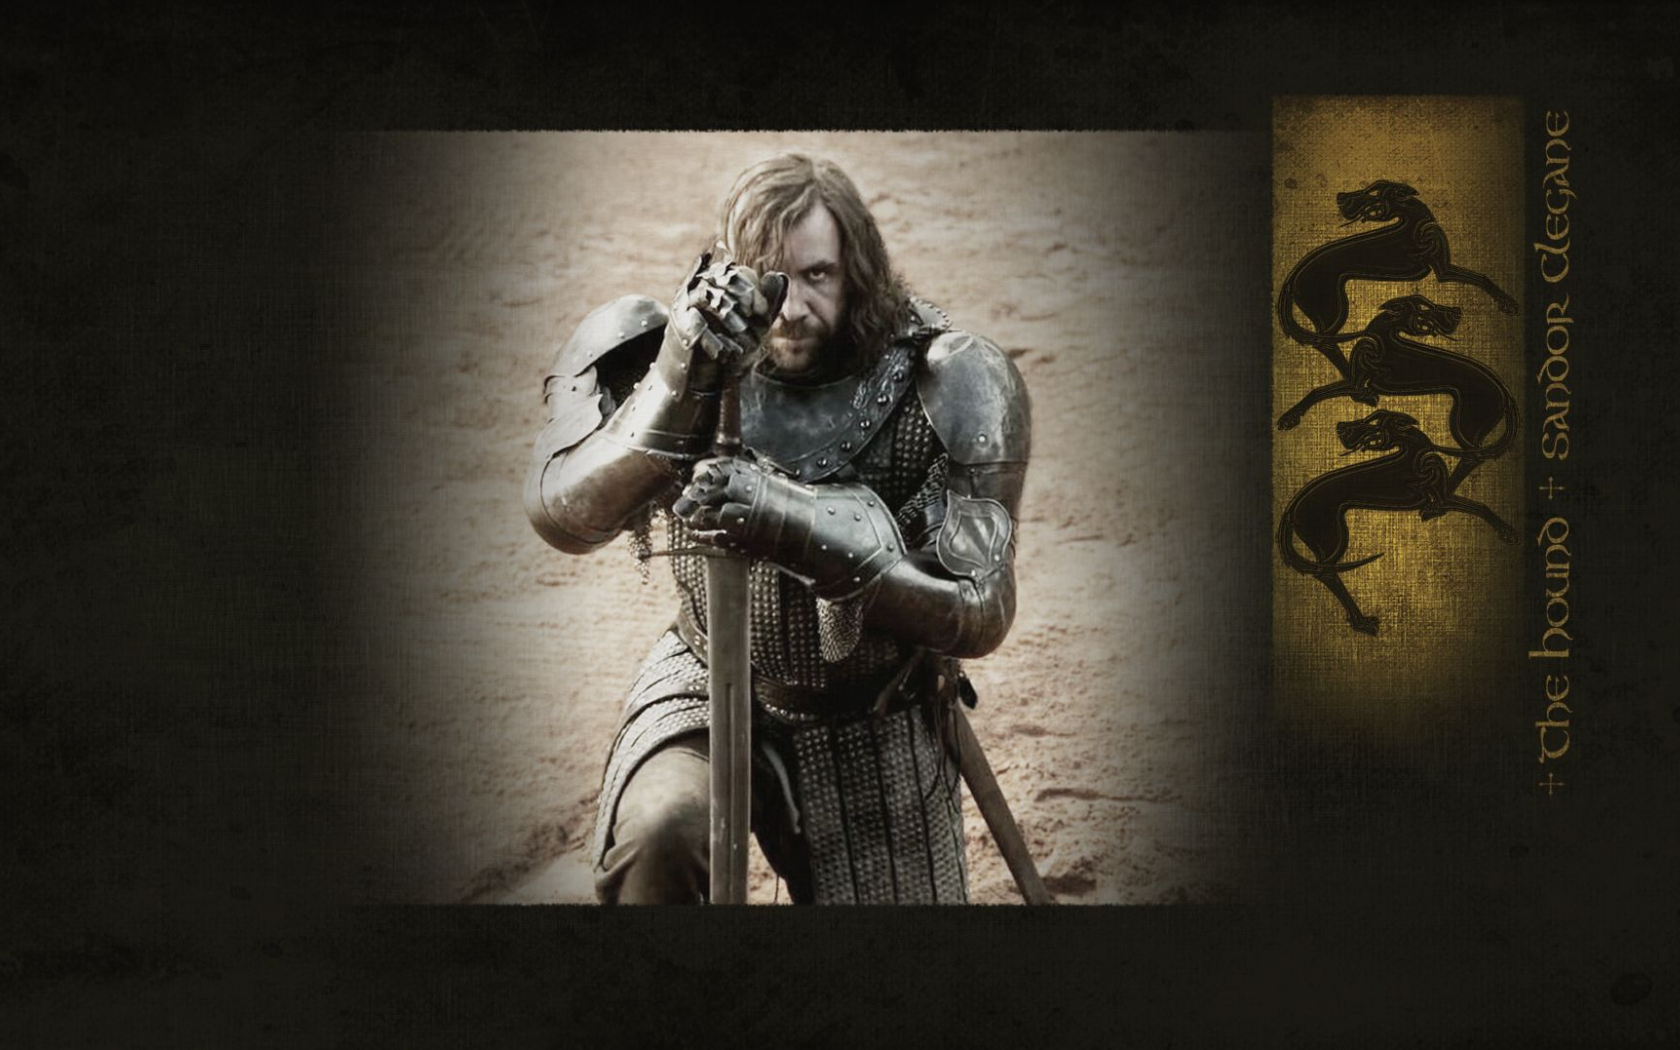 Free Download The Hound Sandor Clegane Wallpaper 1920x1080 Game Of